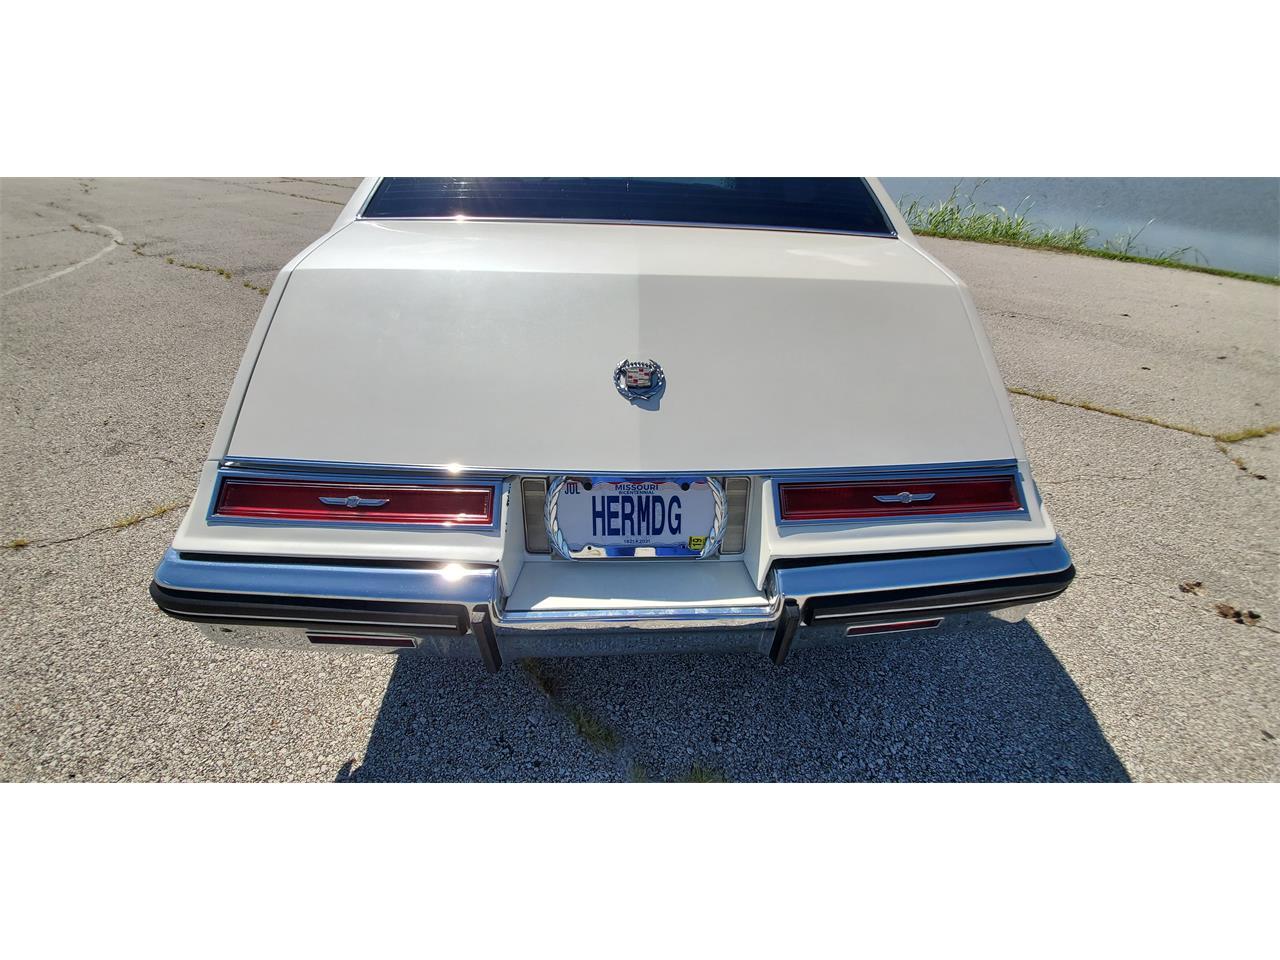 Large Picture of '83 Cadillac Seville - $10,000.00 Offered by a Private Seller - QJQR